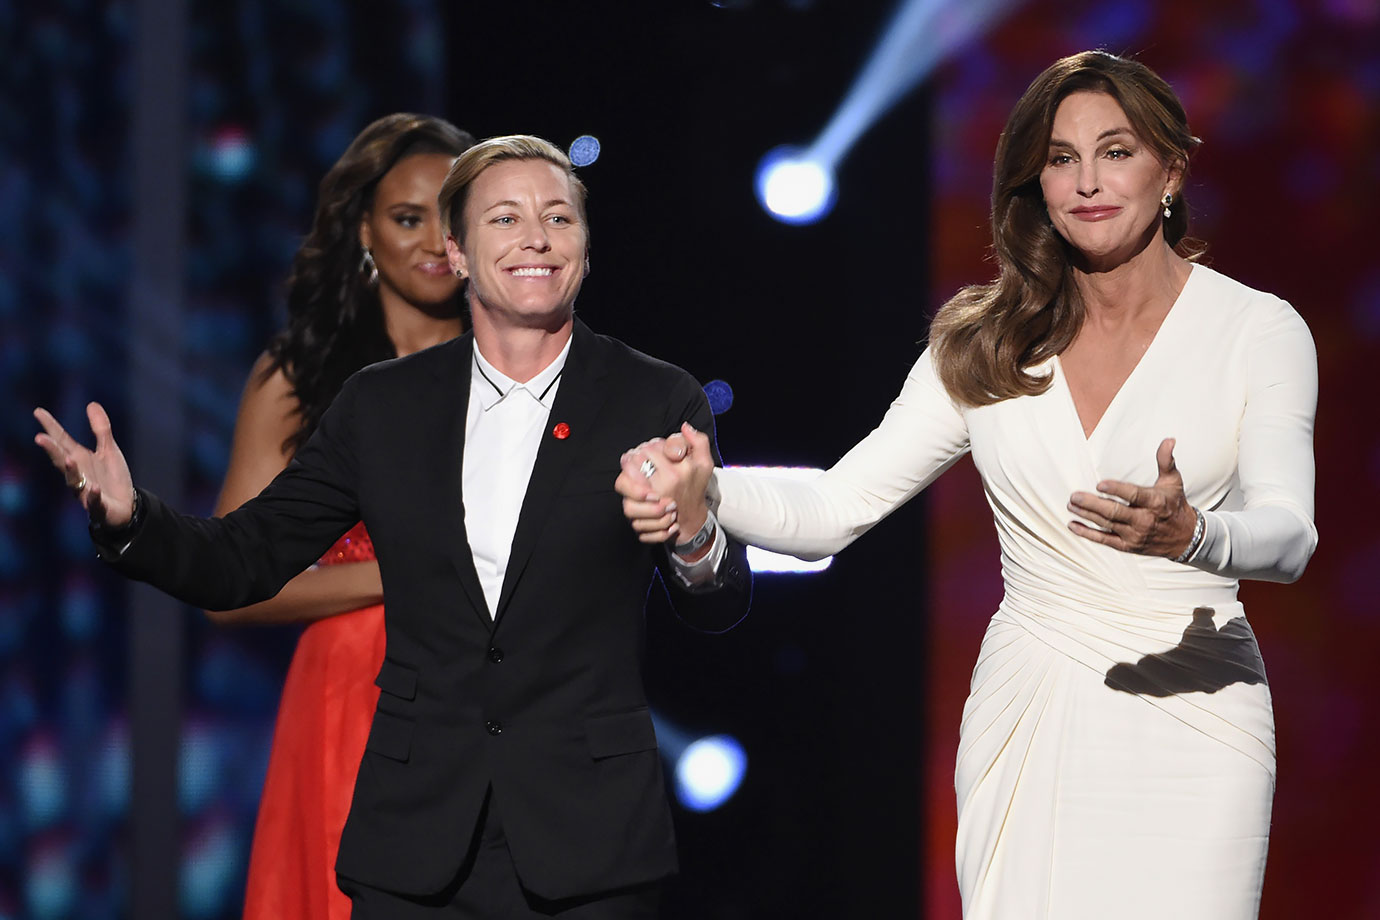 July 15, 2015 — ESPY Awards